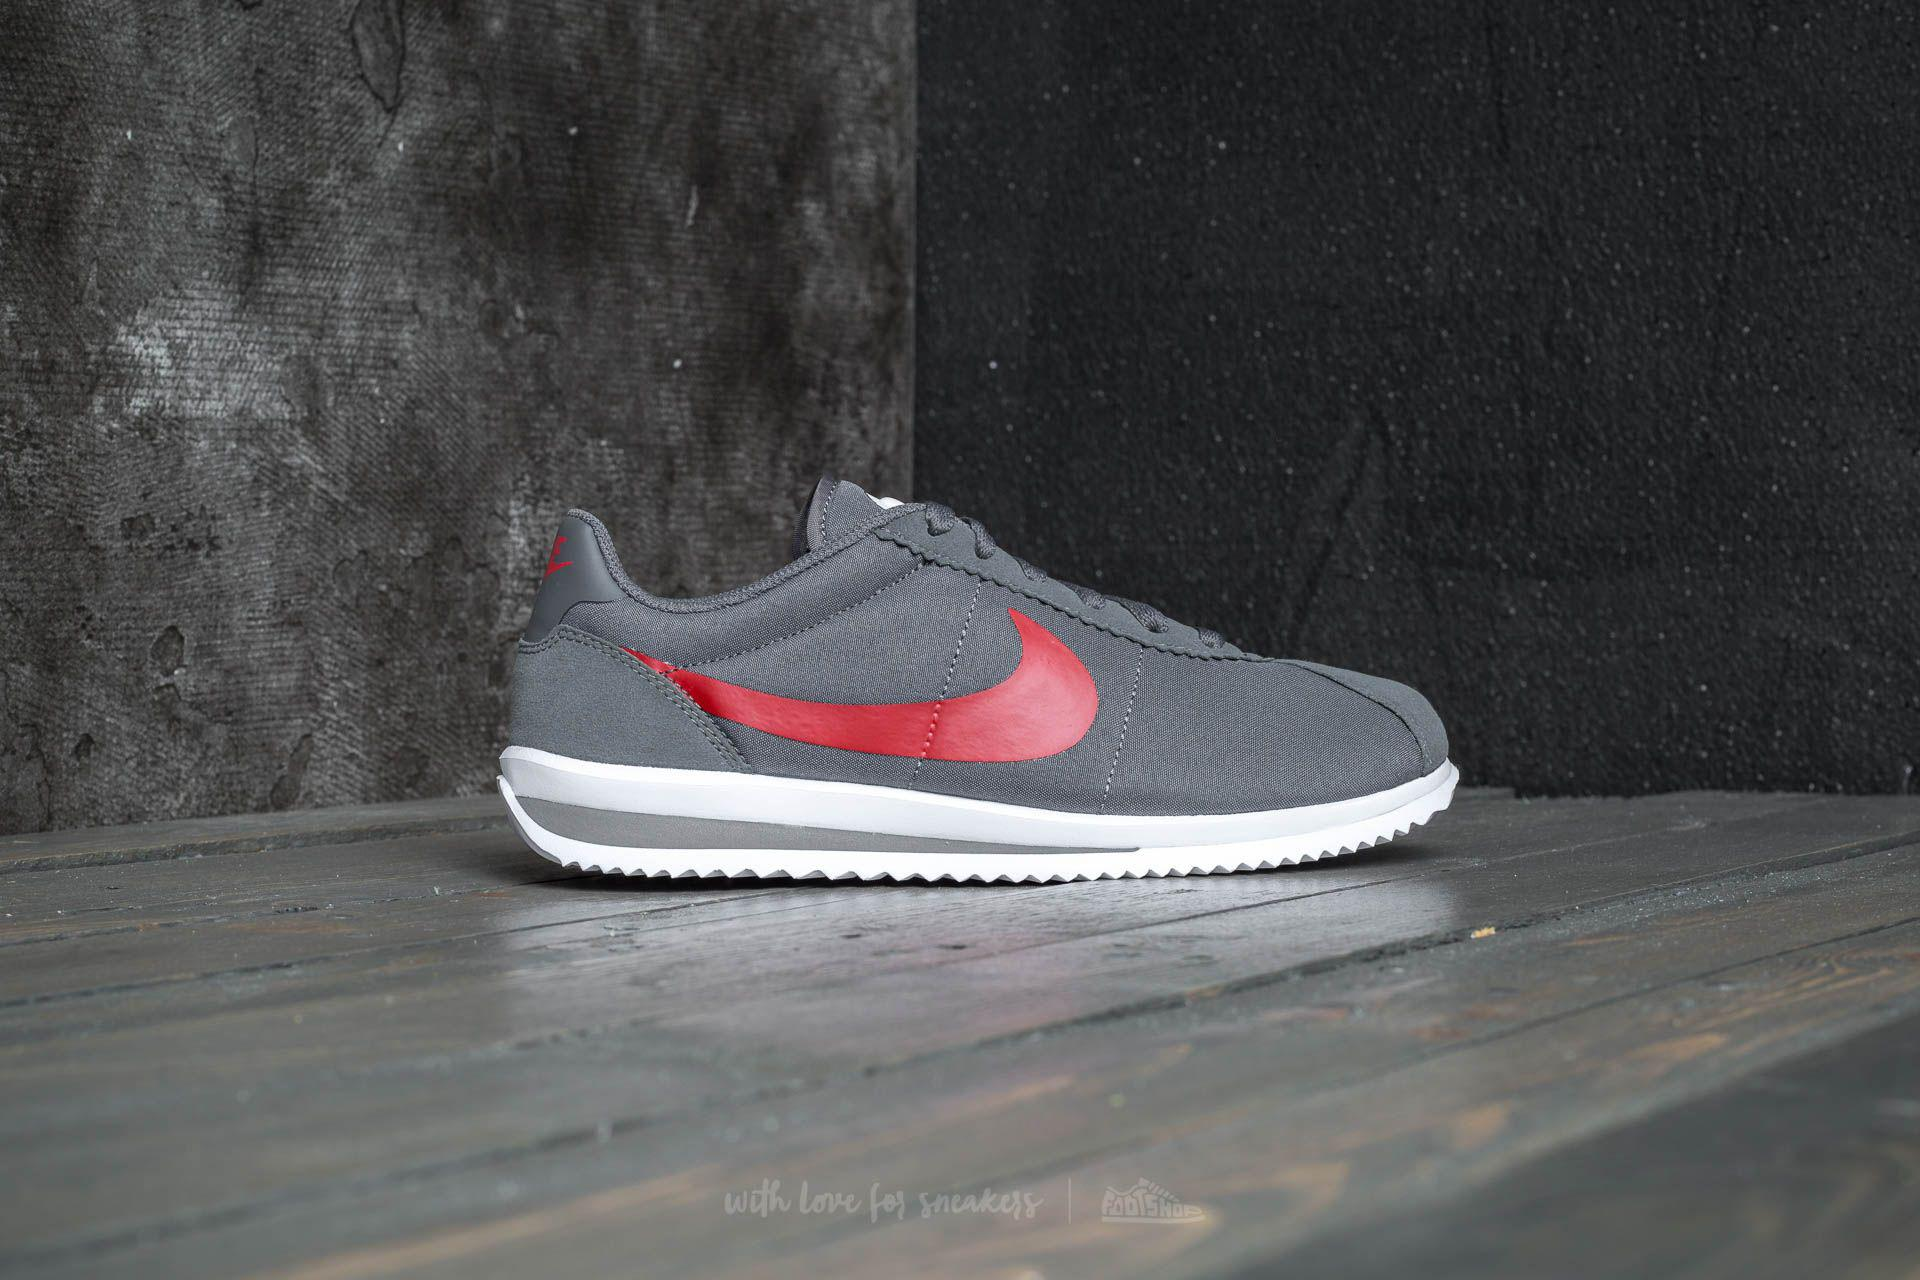 3a1a3d74690a closeout nike cortez white black university red e9cb9 5366a  best price lyst  nike cortez ultra gs dark grey university red in gray a75cf 4a026